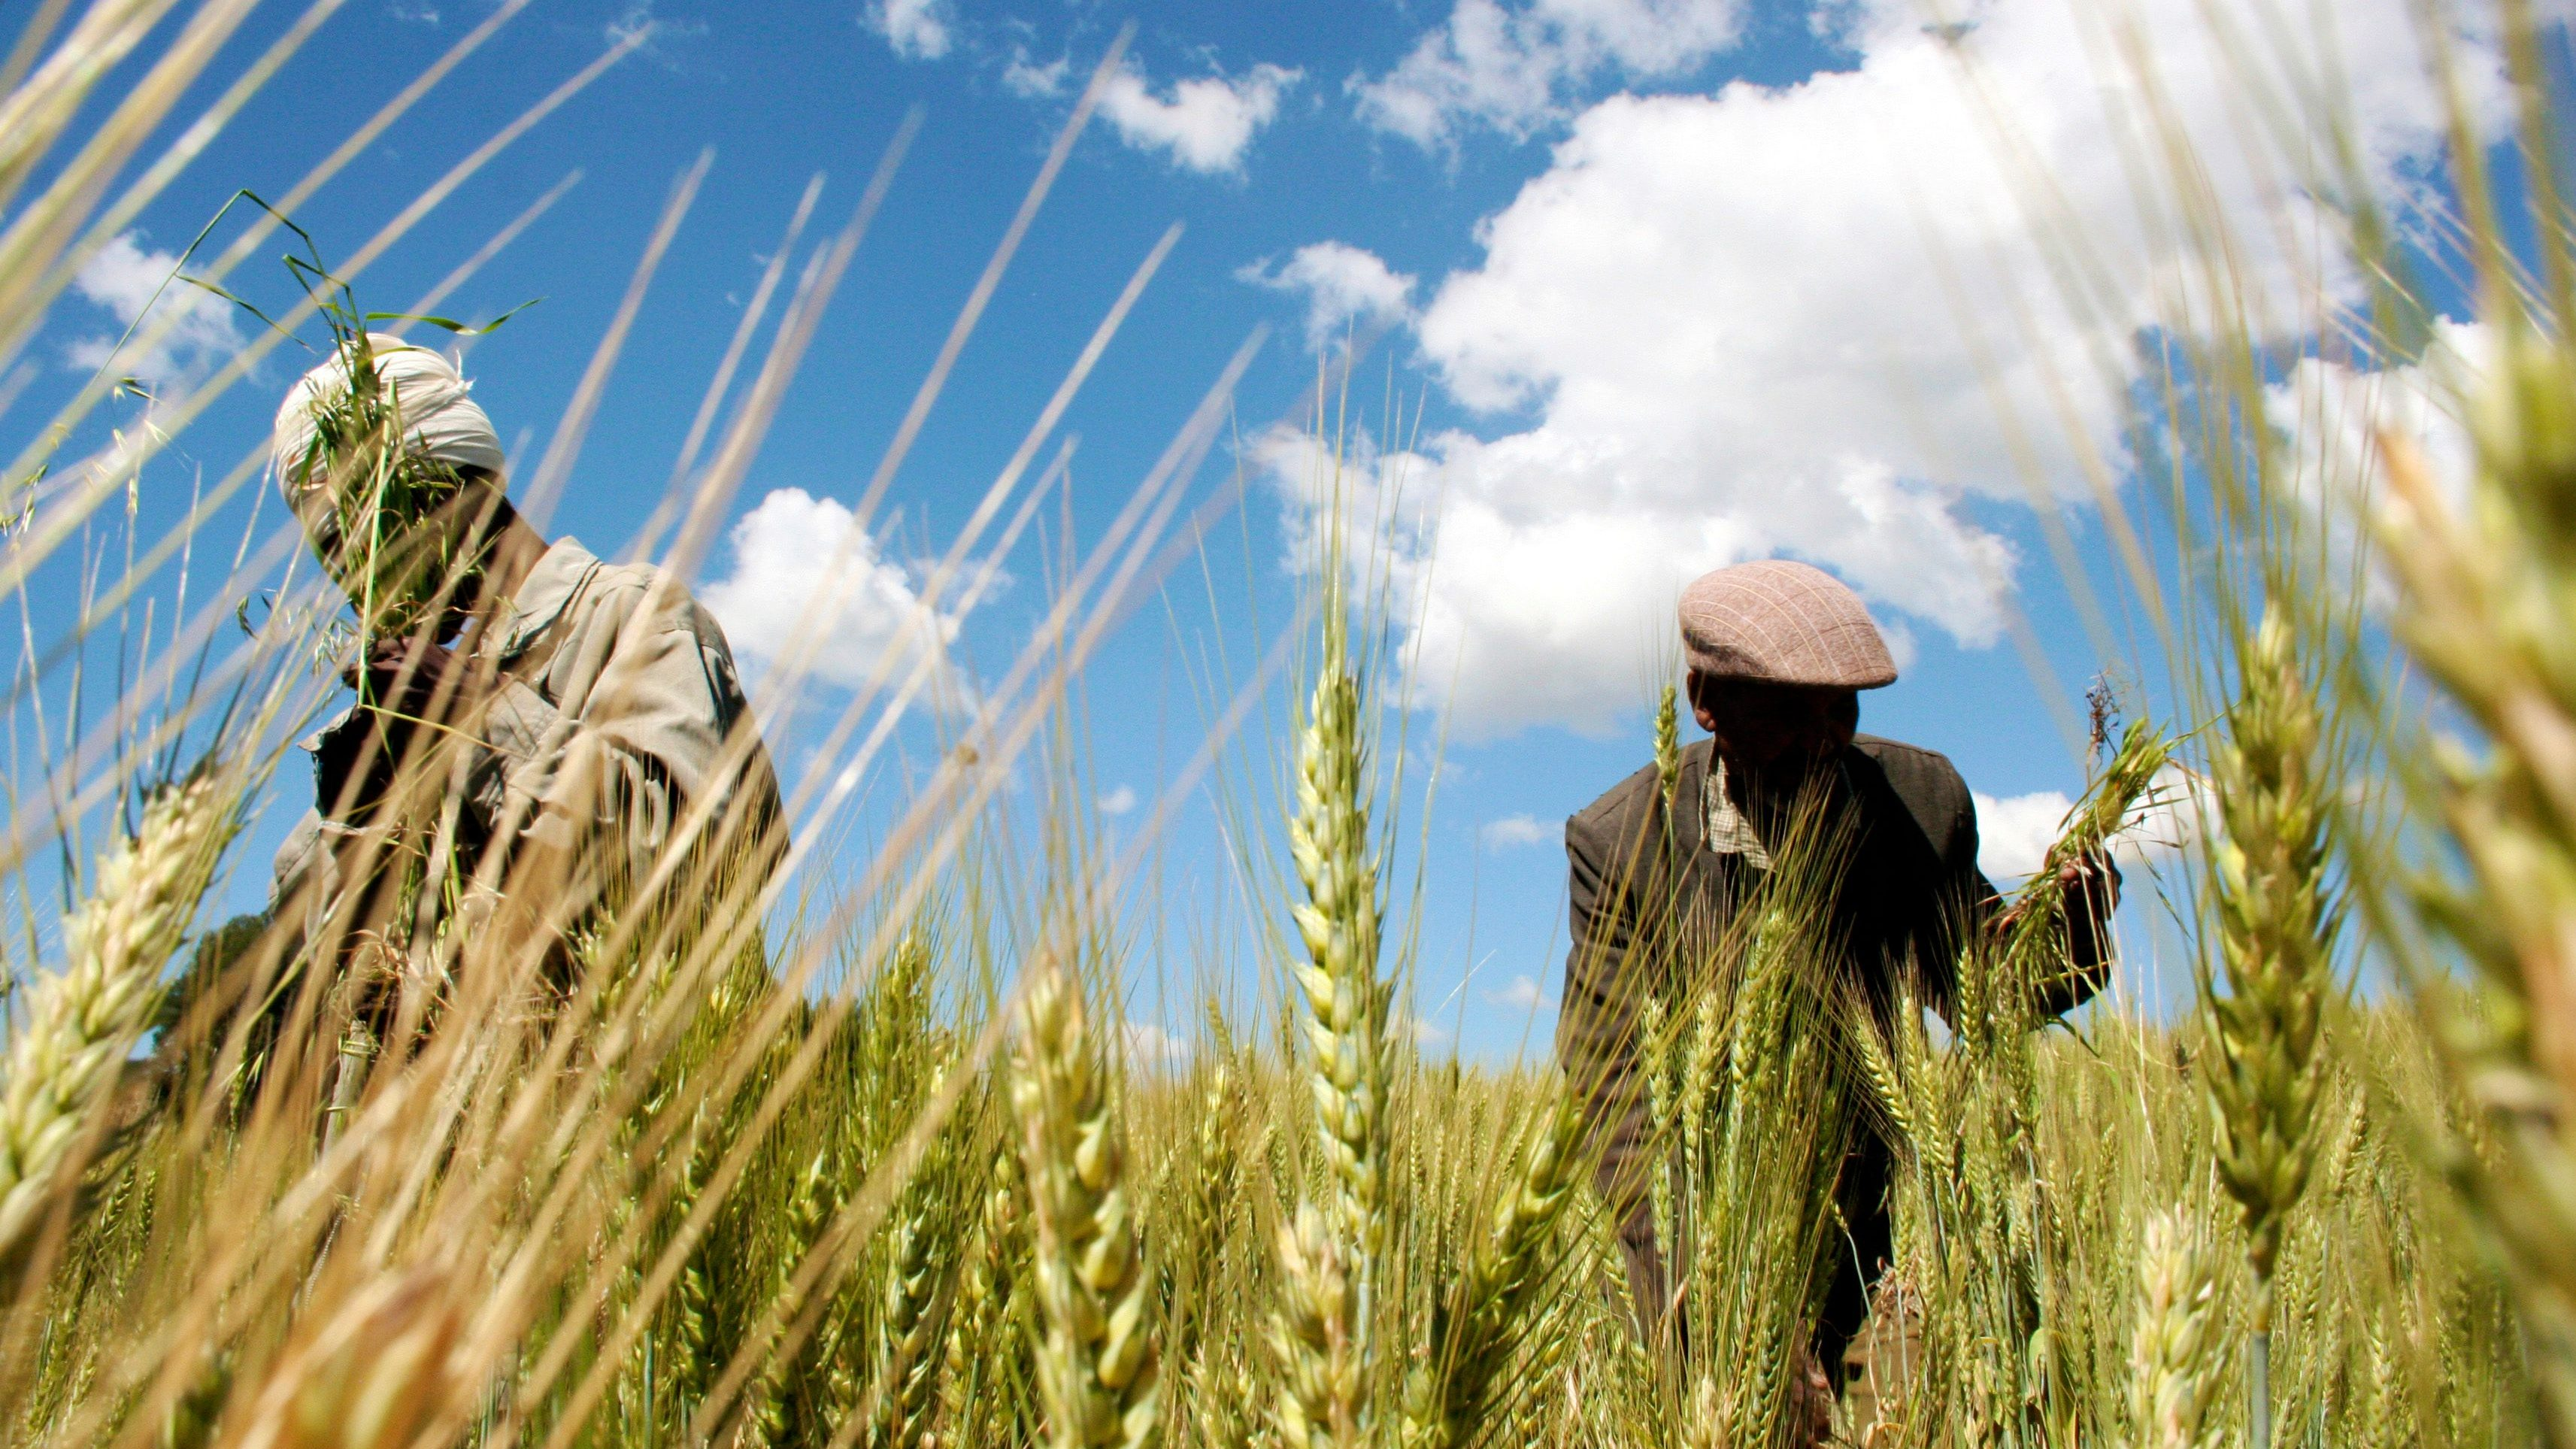 Ethiopia's irrigation investment has boosted economy